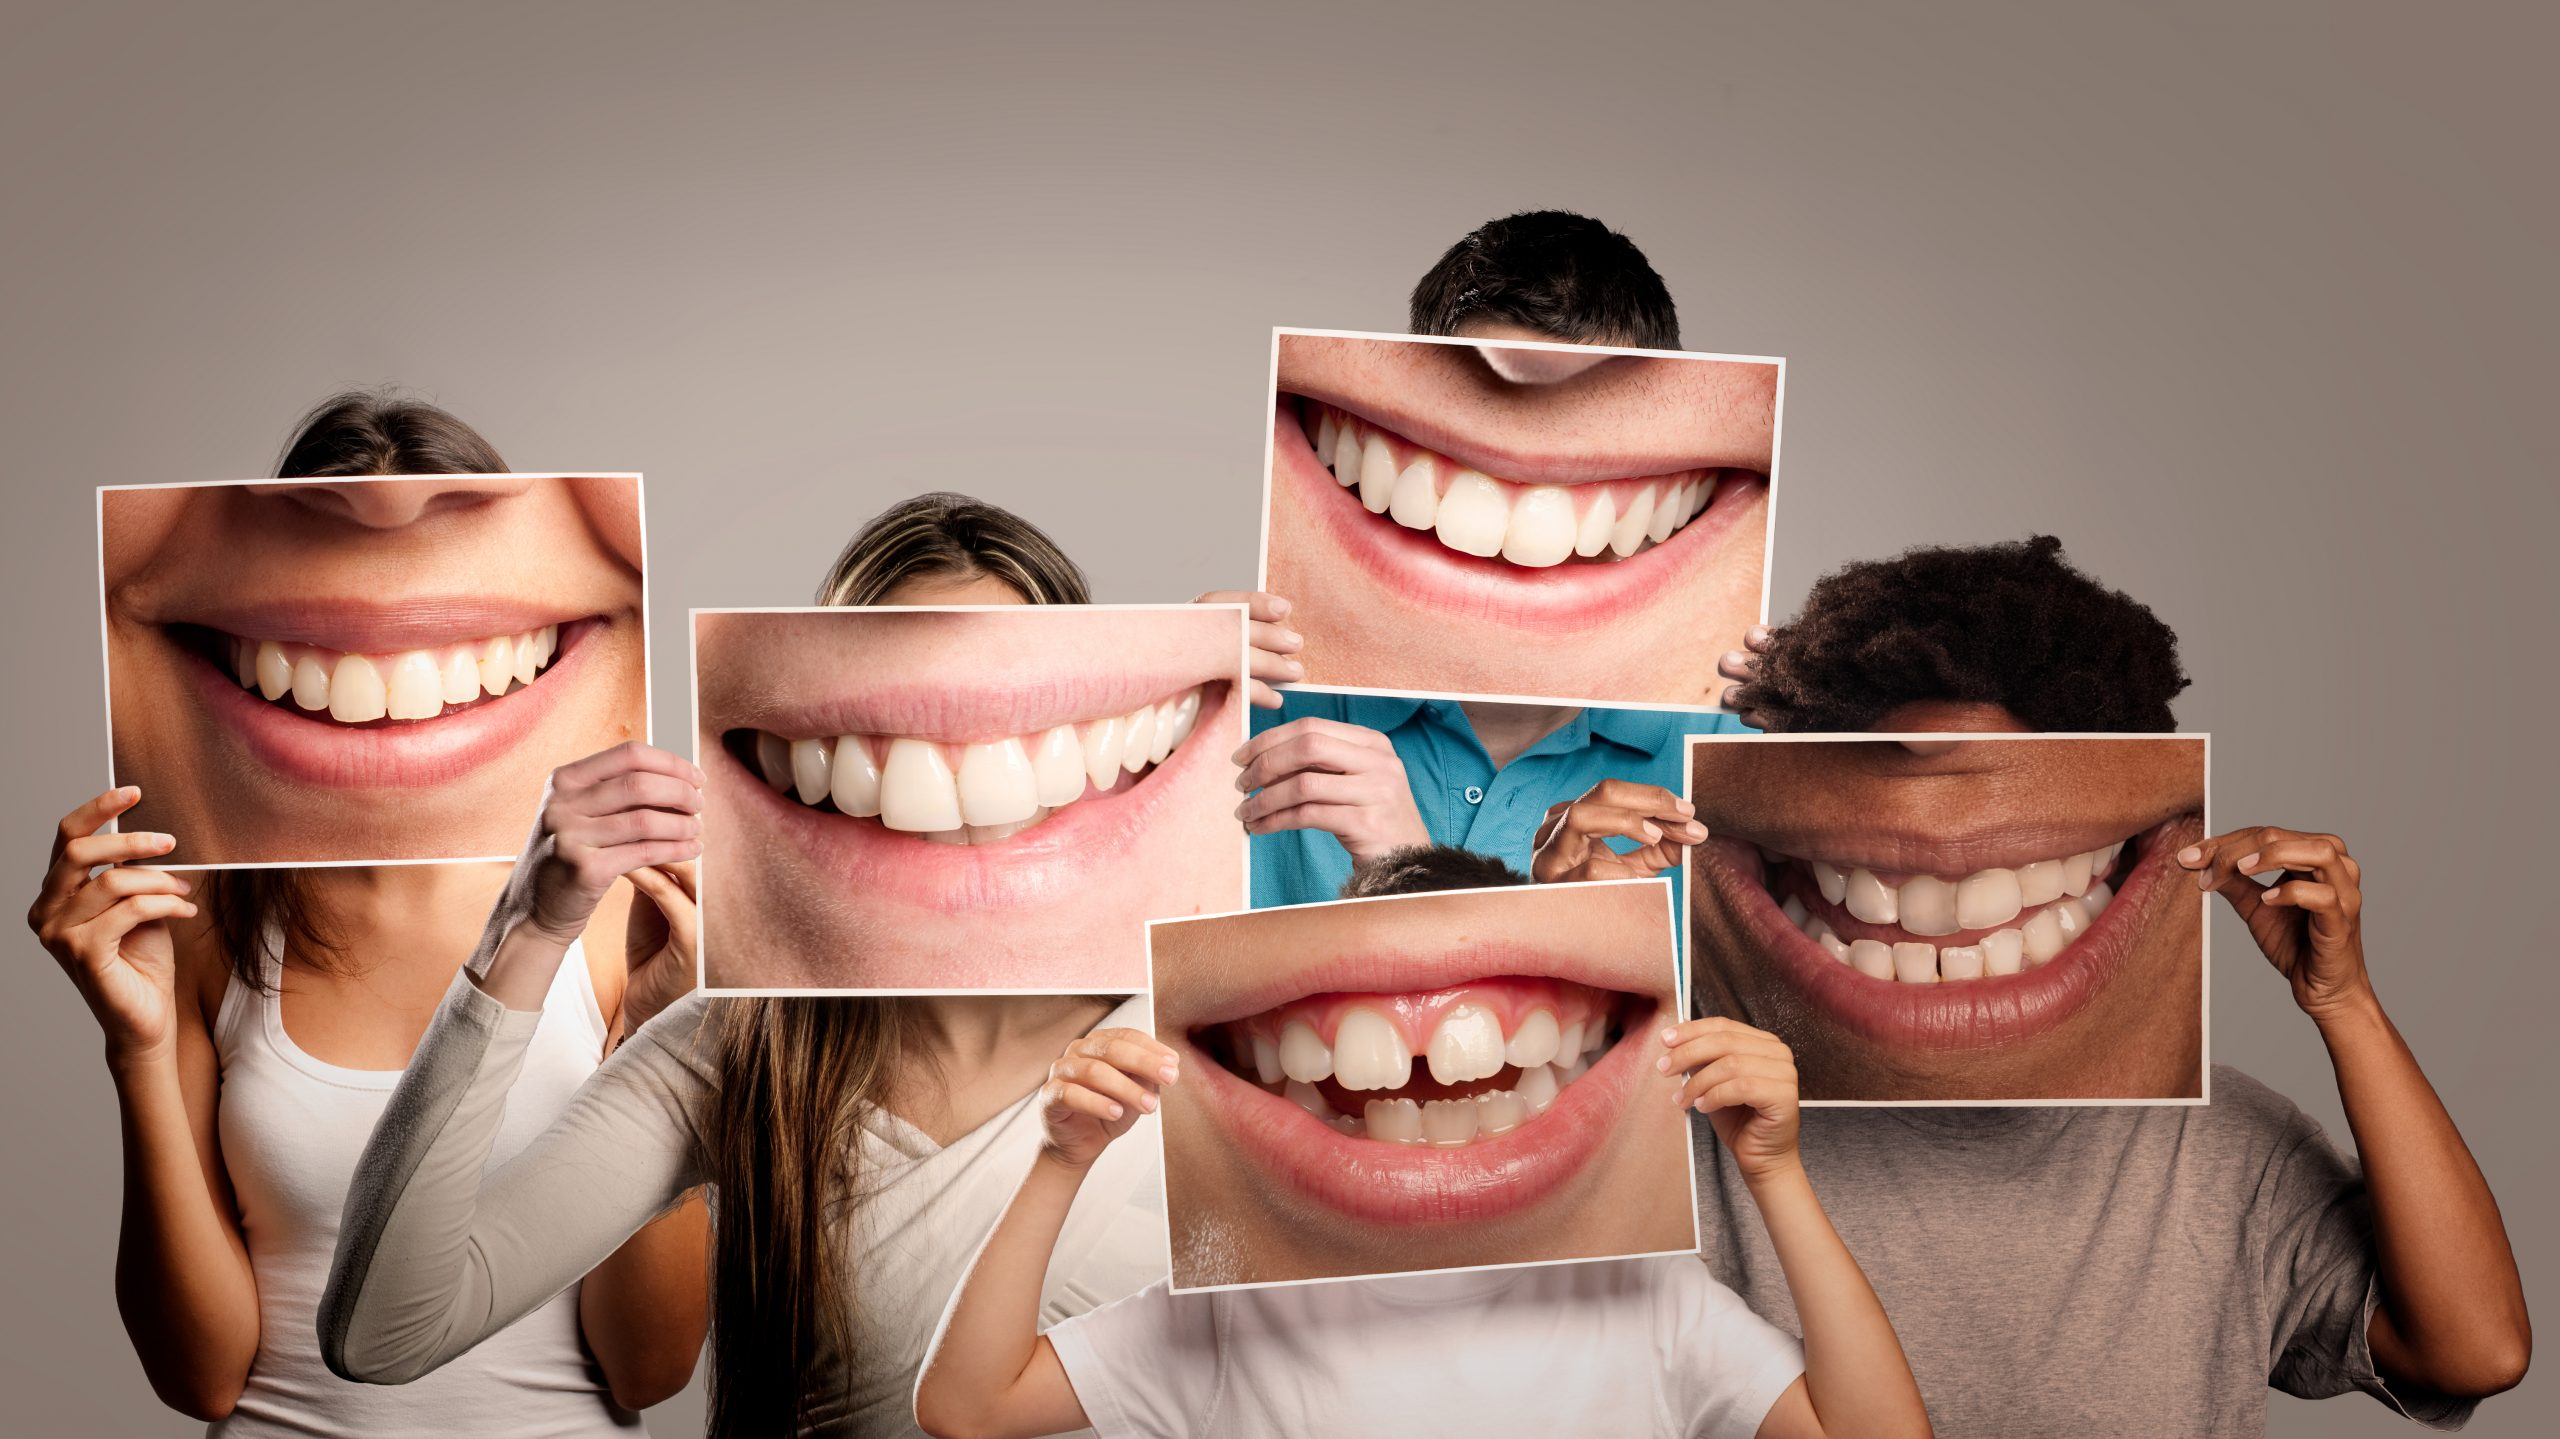 Full Smile Makeover with Veneers - Harley st Smile Clinic